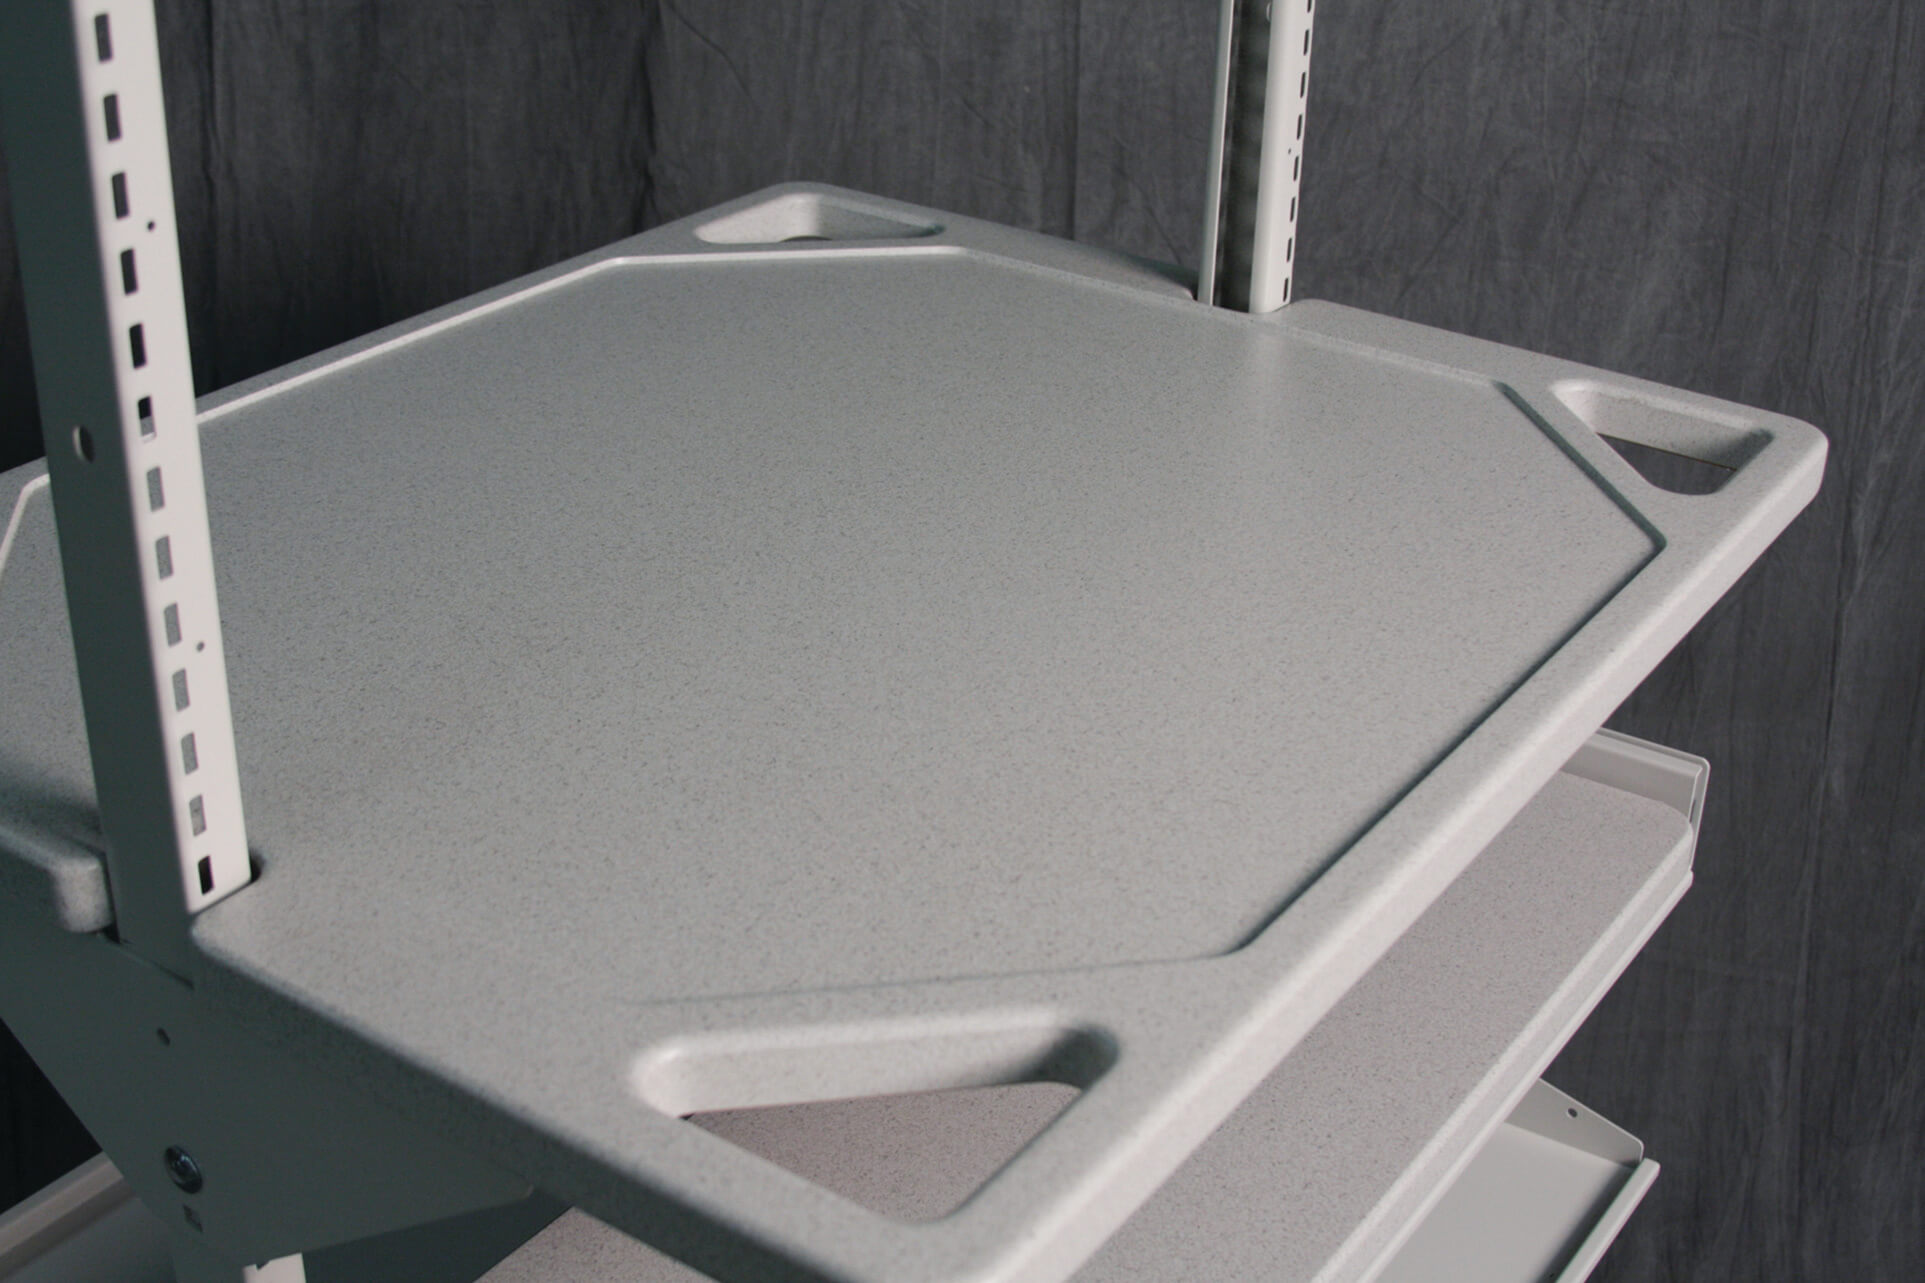 Durable Work Surface for modular shelving and modular cart systems